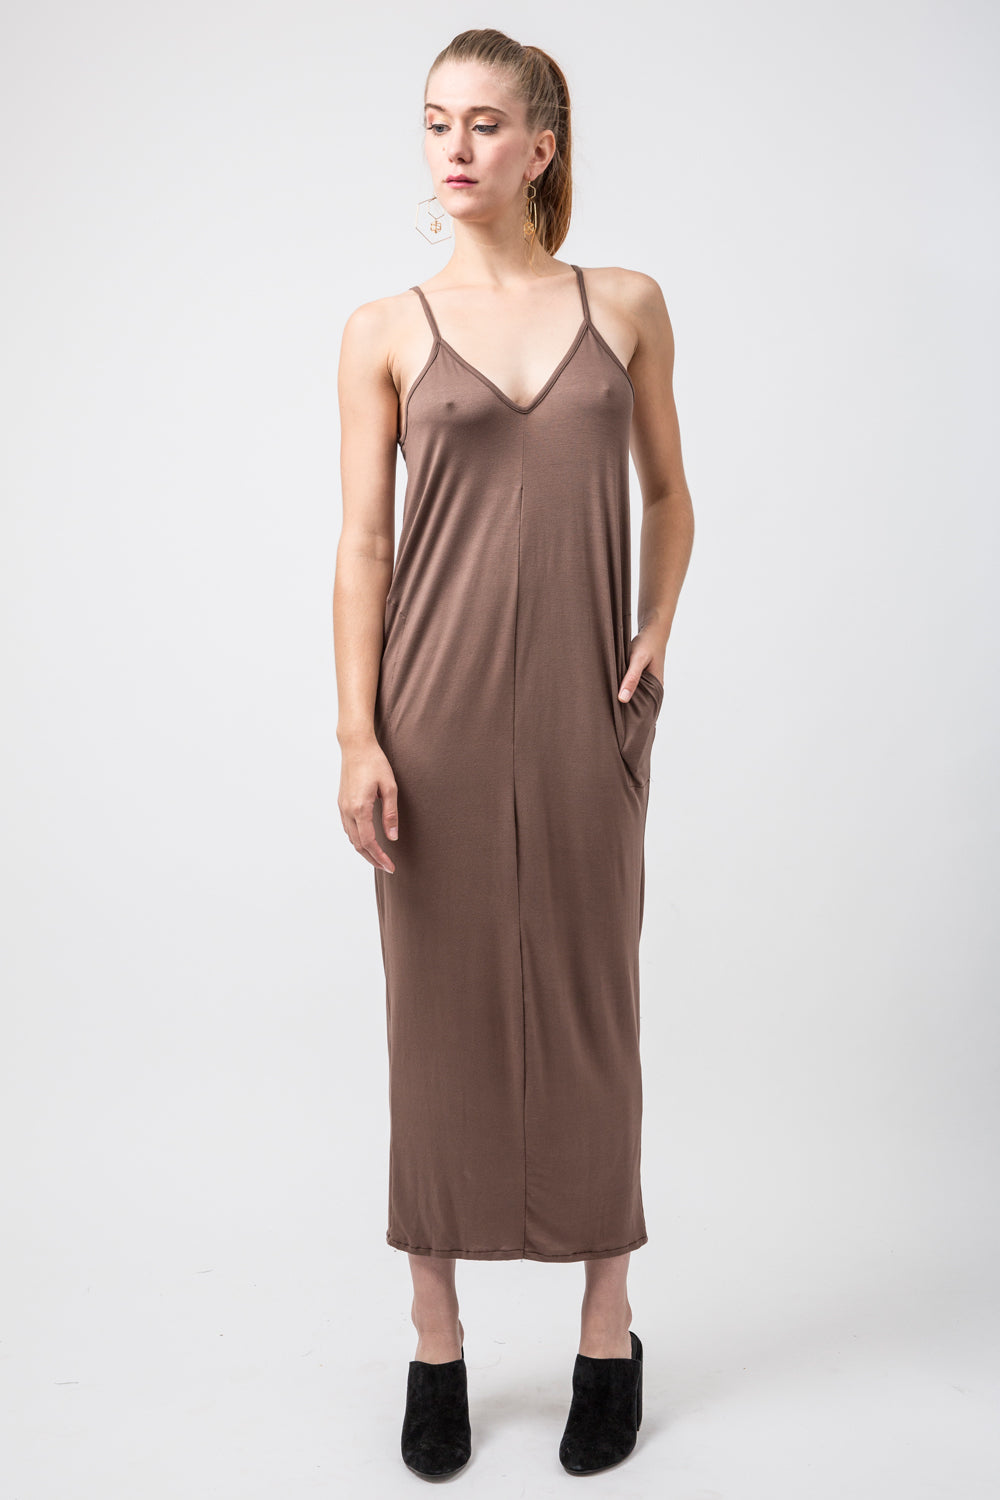 Jezebel Tank Dress